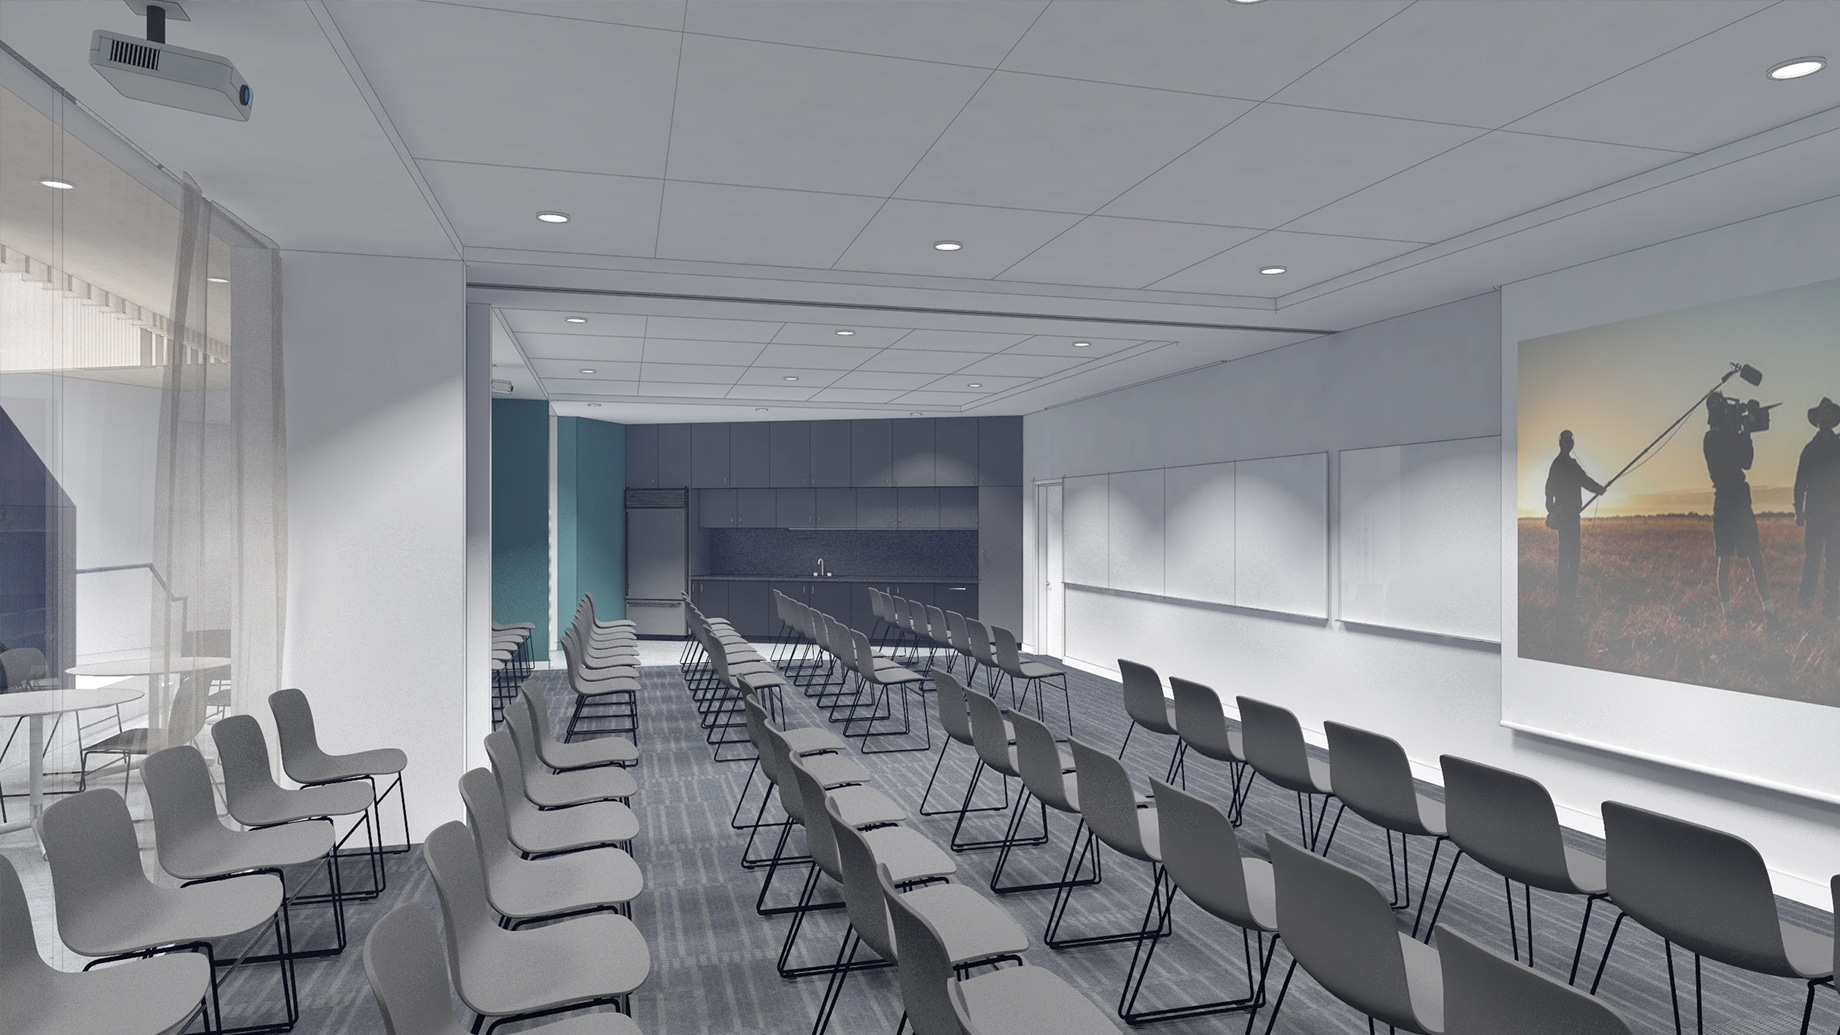 Artist rendering of classroom with charis arranged in rows